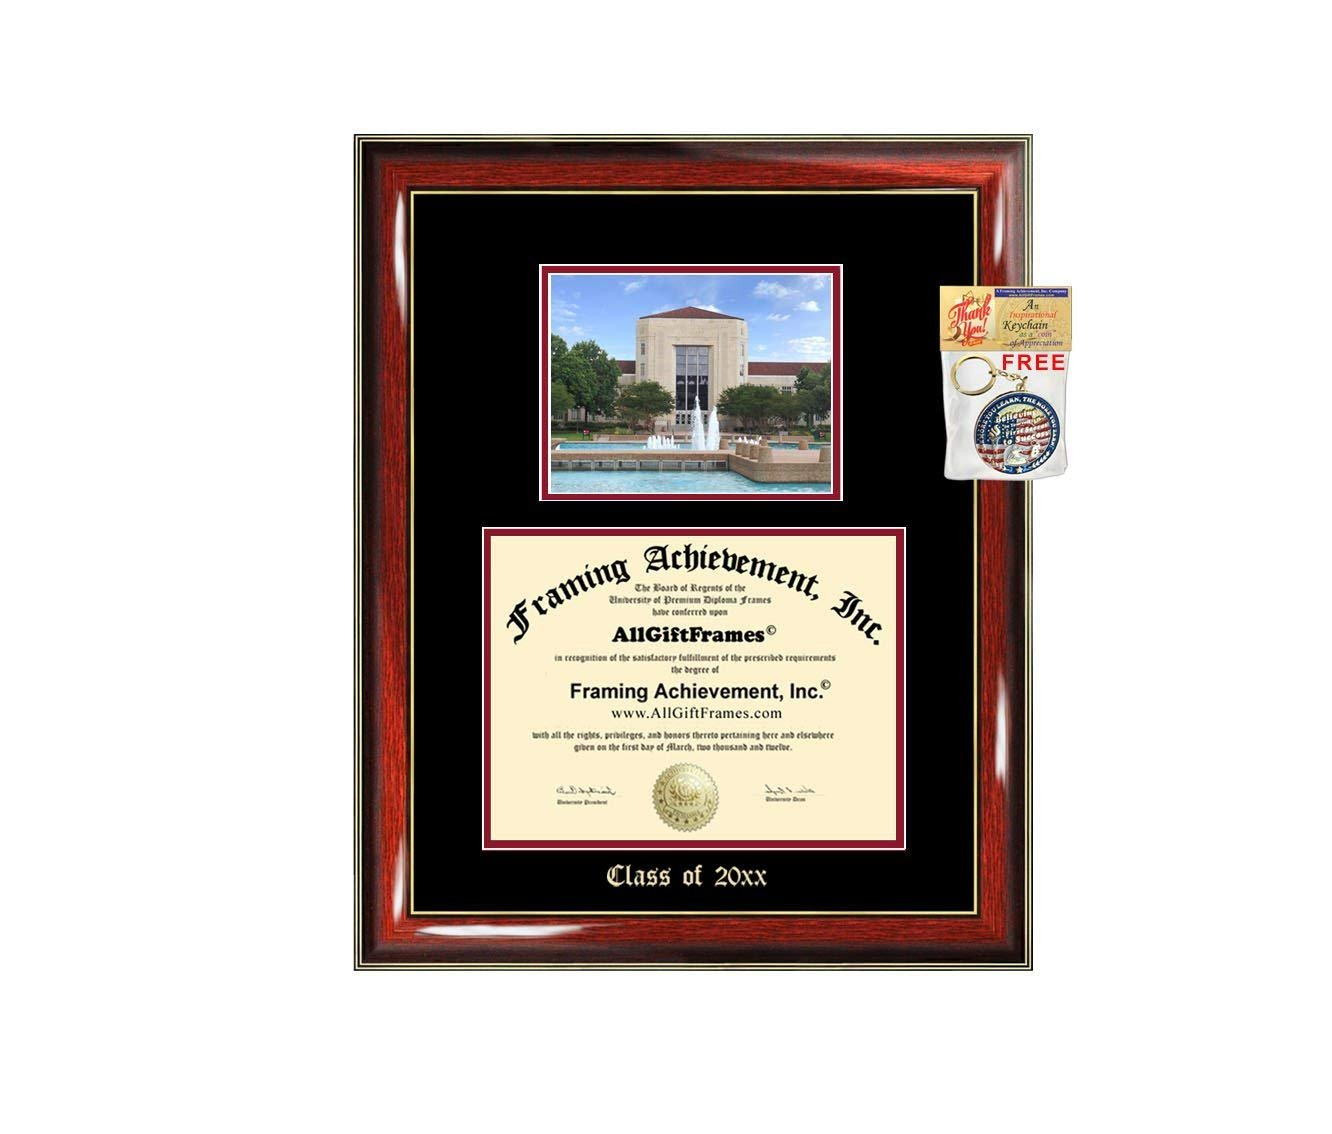 University Of Houston Mba >> Diploma Frame Big University Of Houston Graduation Gift Case Uh Embossed Picture Frames Engraving Degree Graduate Bachelor Masters Mba Phd Doctorate